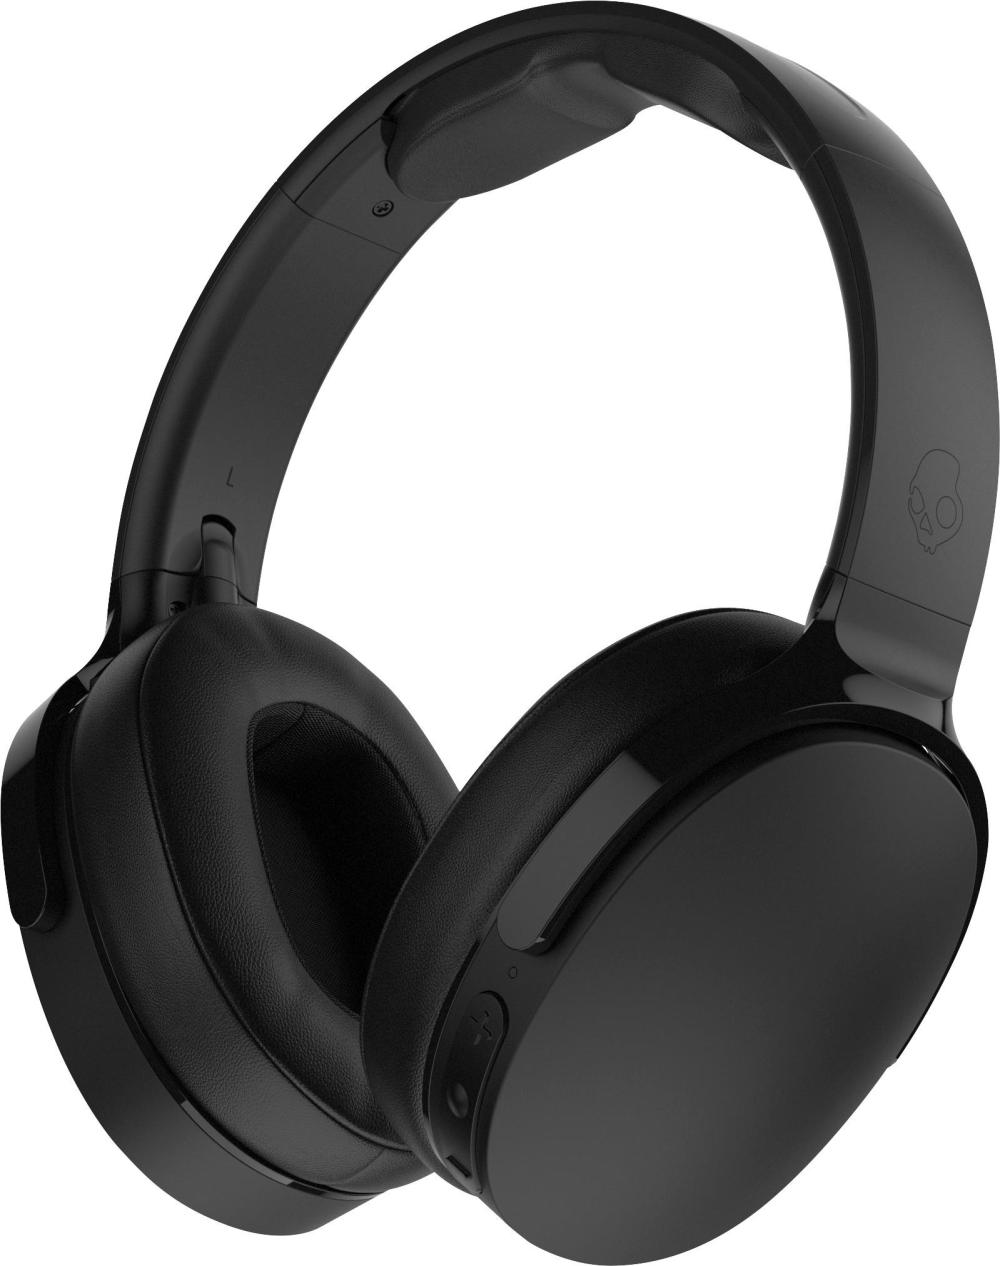 medium resolution of skullcandy hesh 3 wireless over the ear headphones black s6htw k033 best buy